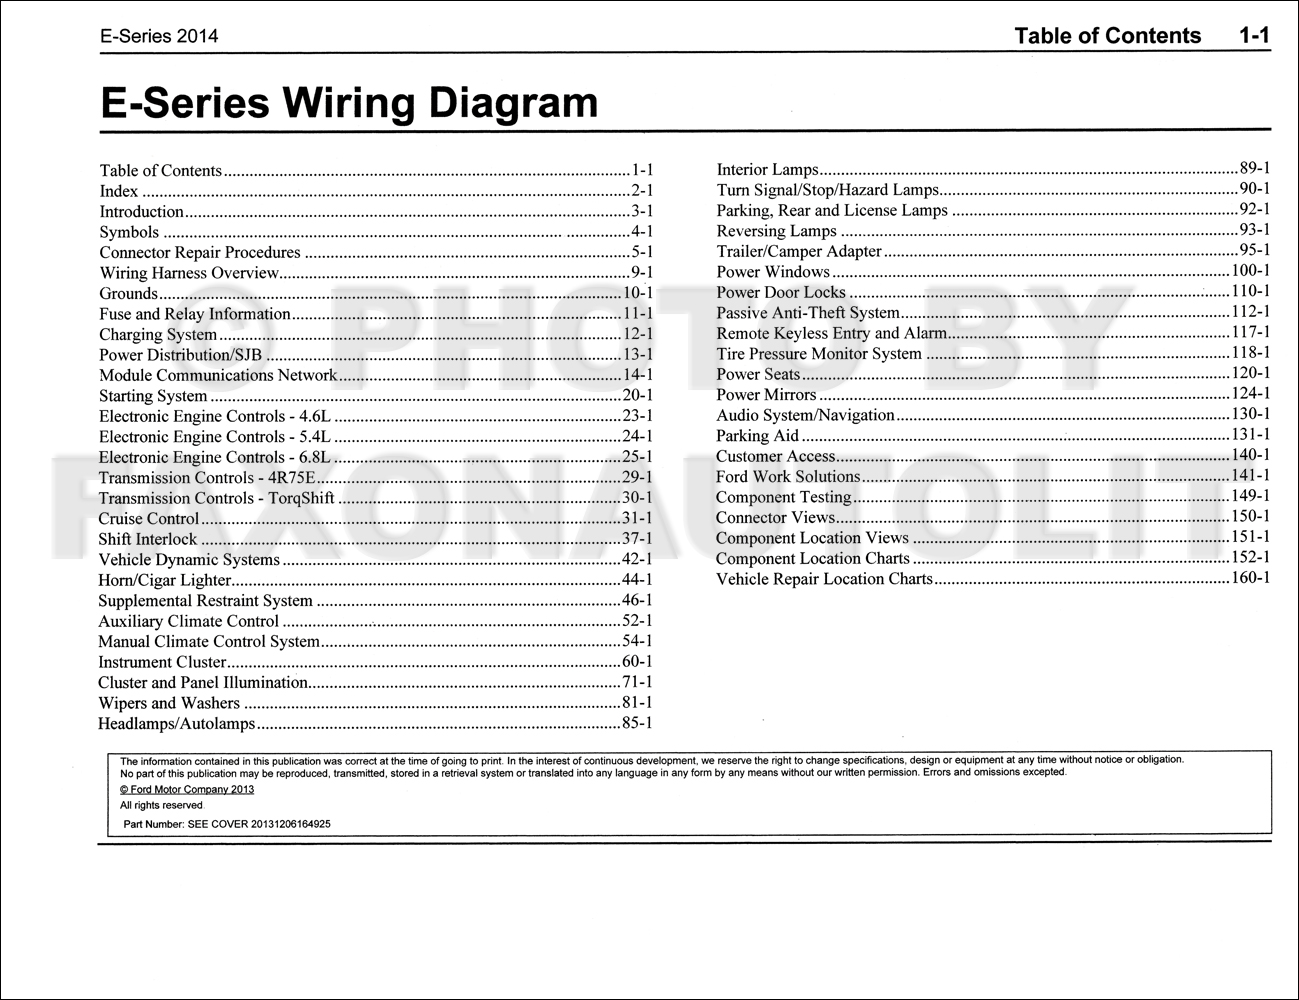 1990 Ford E 450 Fuse Diagram Electronic Wiring Diagrams 2007 E450 2014 Econoline Manual Original Van E150 E250 F 150 Heritage